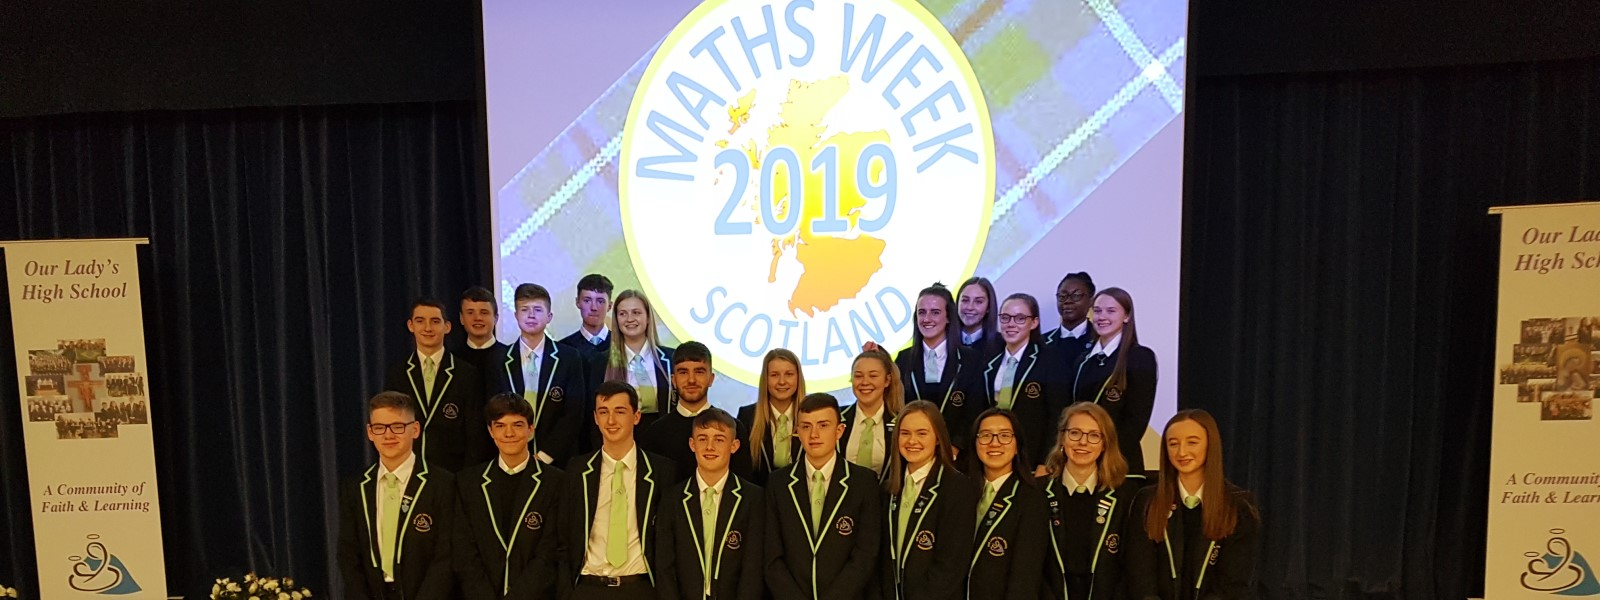 Our Lady's High School, Maths Week Scotland 2019